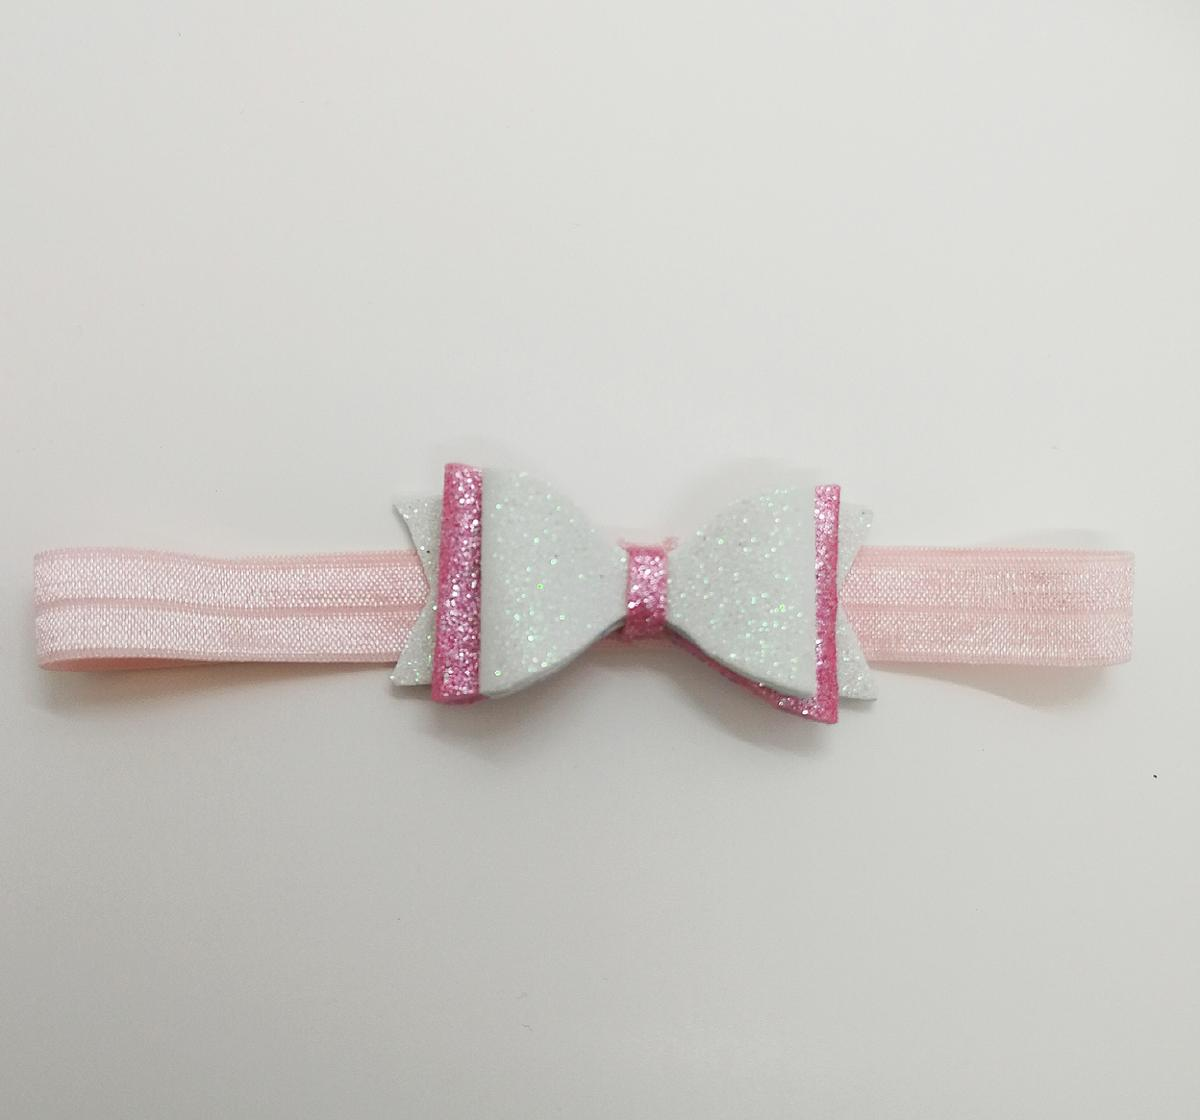 FREE GIFT WITH EVERY ORDER! Available in clips, bobble or baby headband, can be made in different colours, please have a look at my other items and feel free to contact me if you have any questions. Have a nice day :)